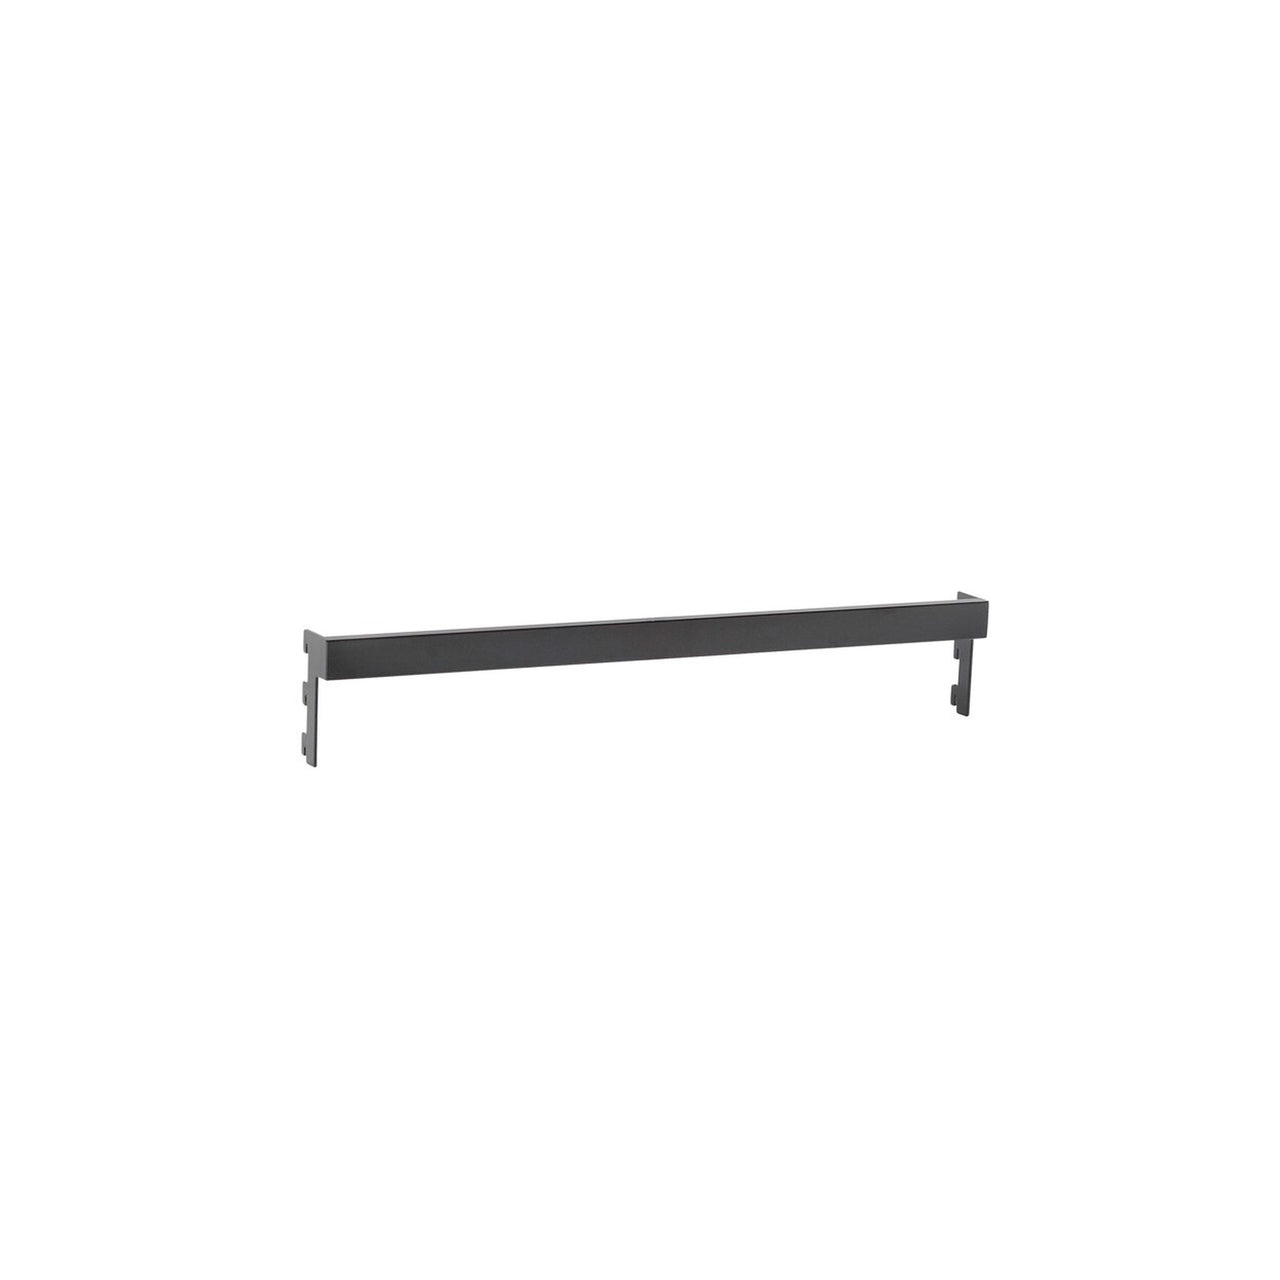 MAXe backrail 600 mm bay  598 W x 32 H x 12.7 mm D E4006